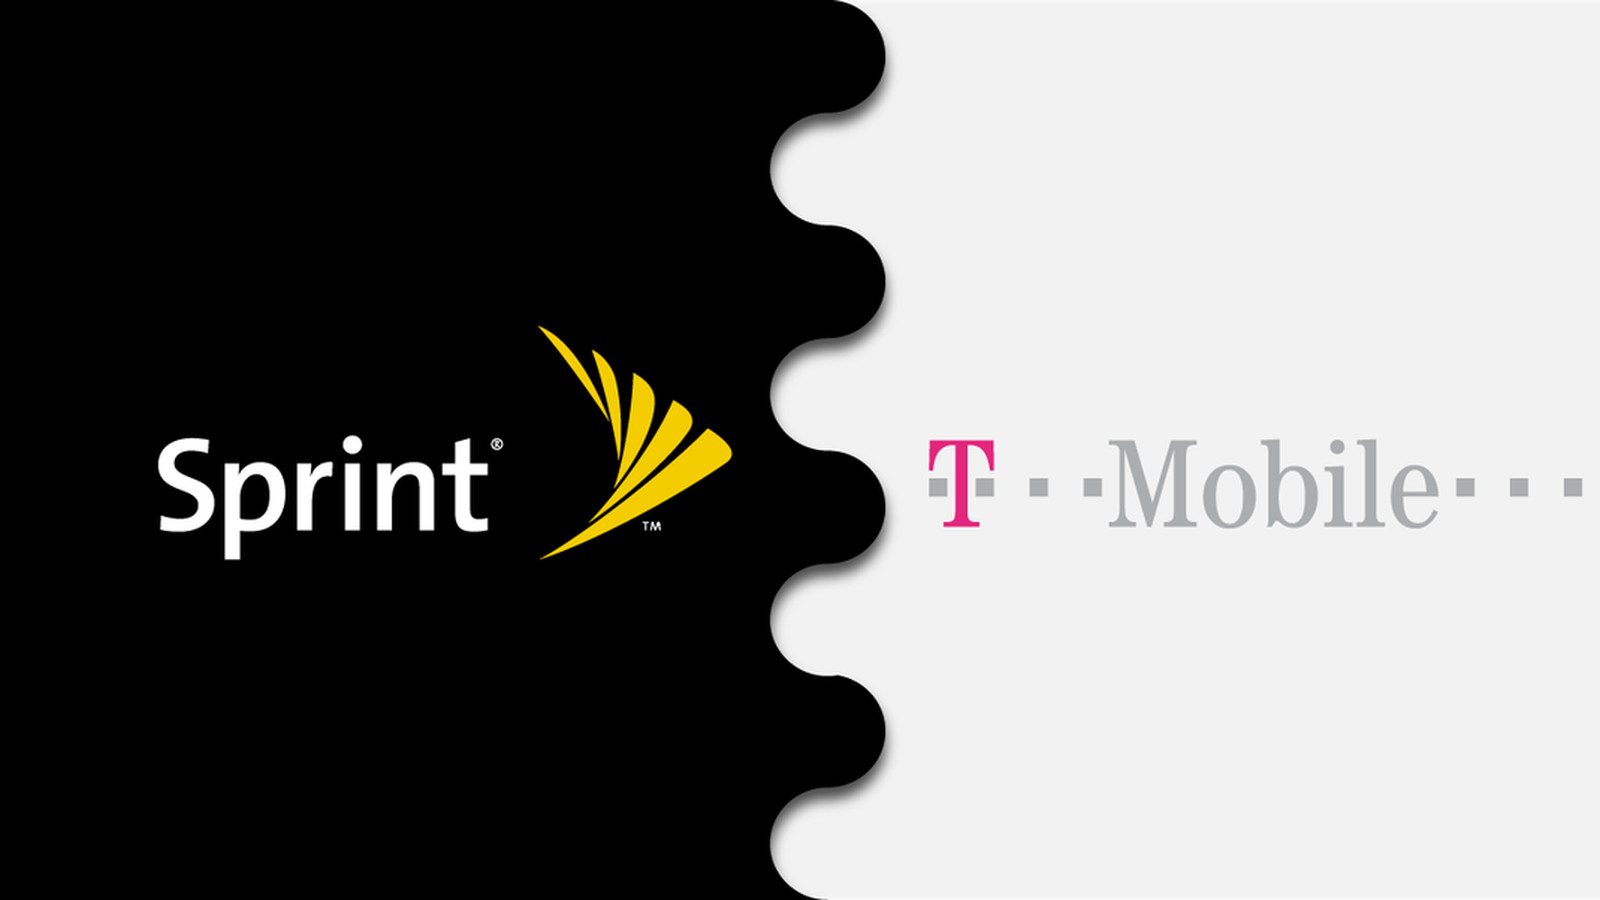 Sprint and T-Mobile merger talks are starting again ...